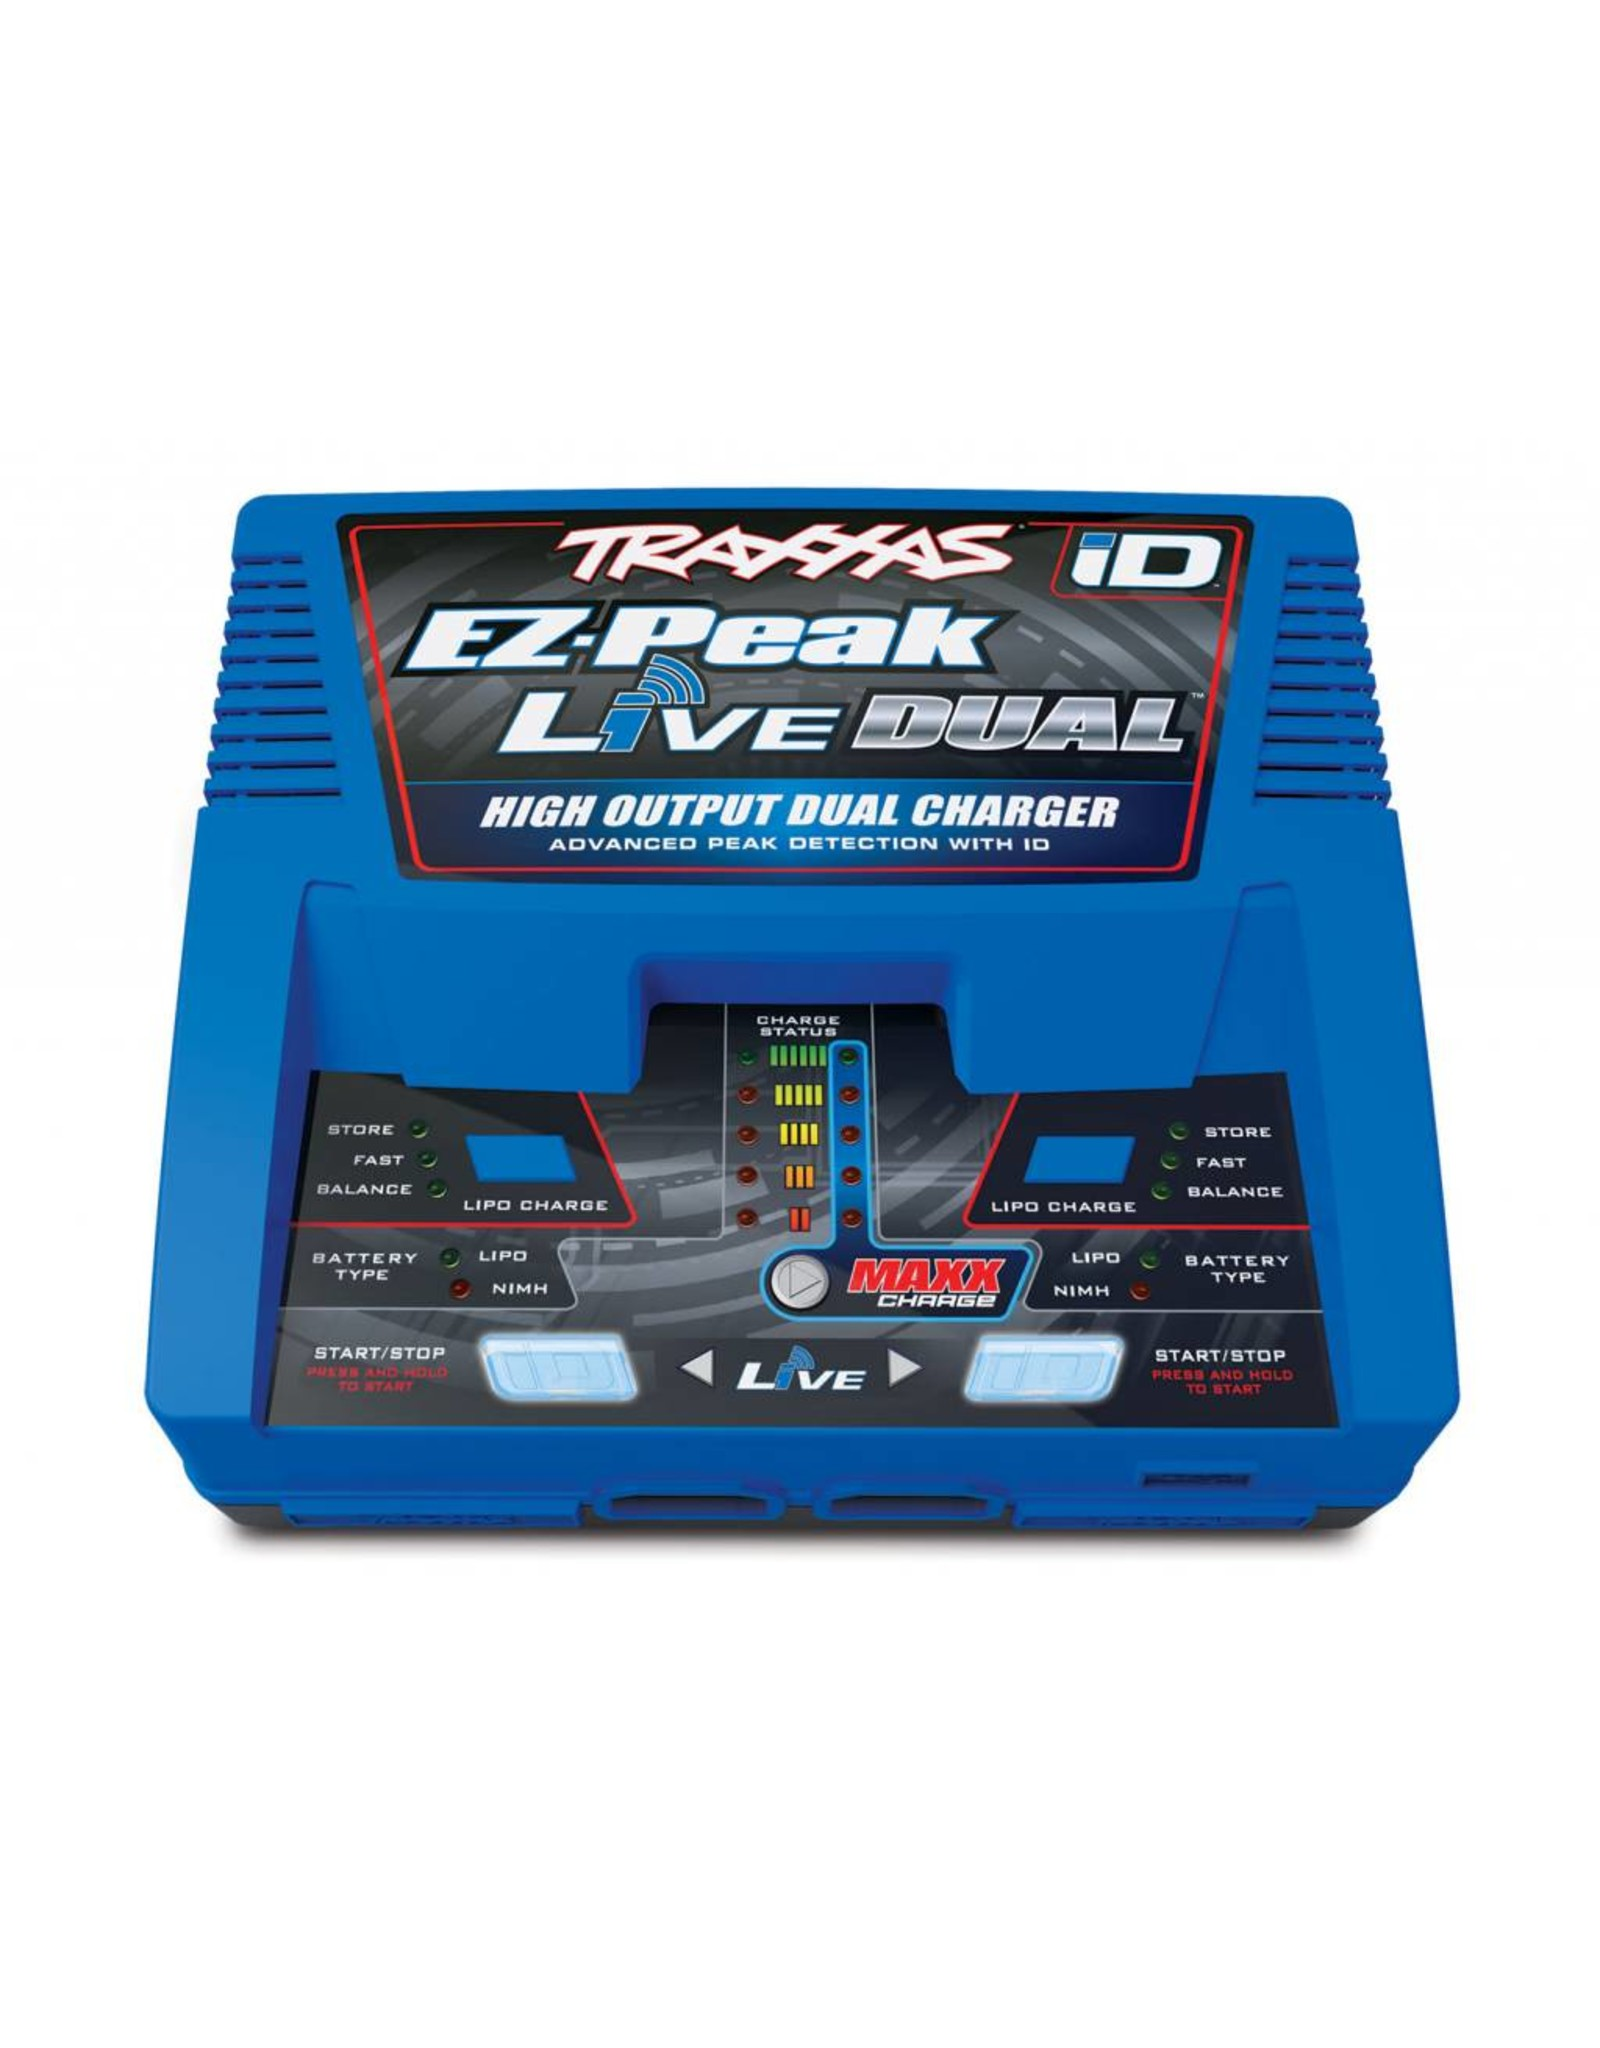 Traxxas Charger, EZ-Peak Live Dual, 200W, NiMH/LiPo with iD Auto Battery Identification (TRA2973)